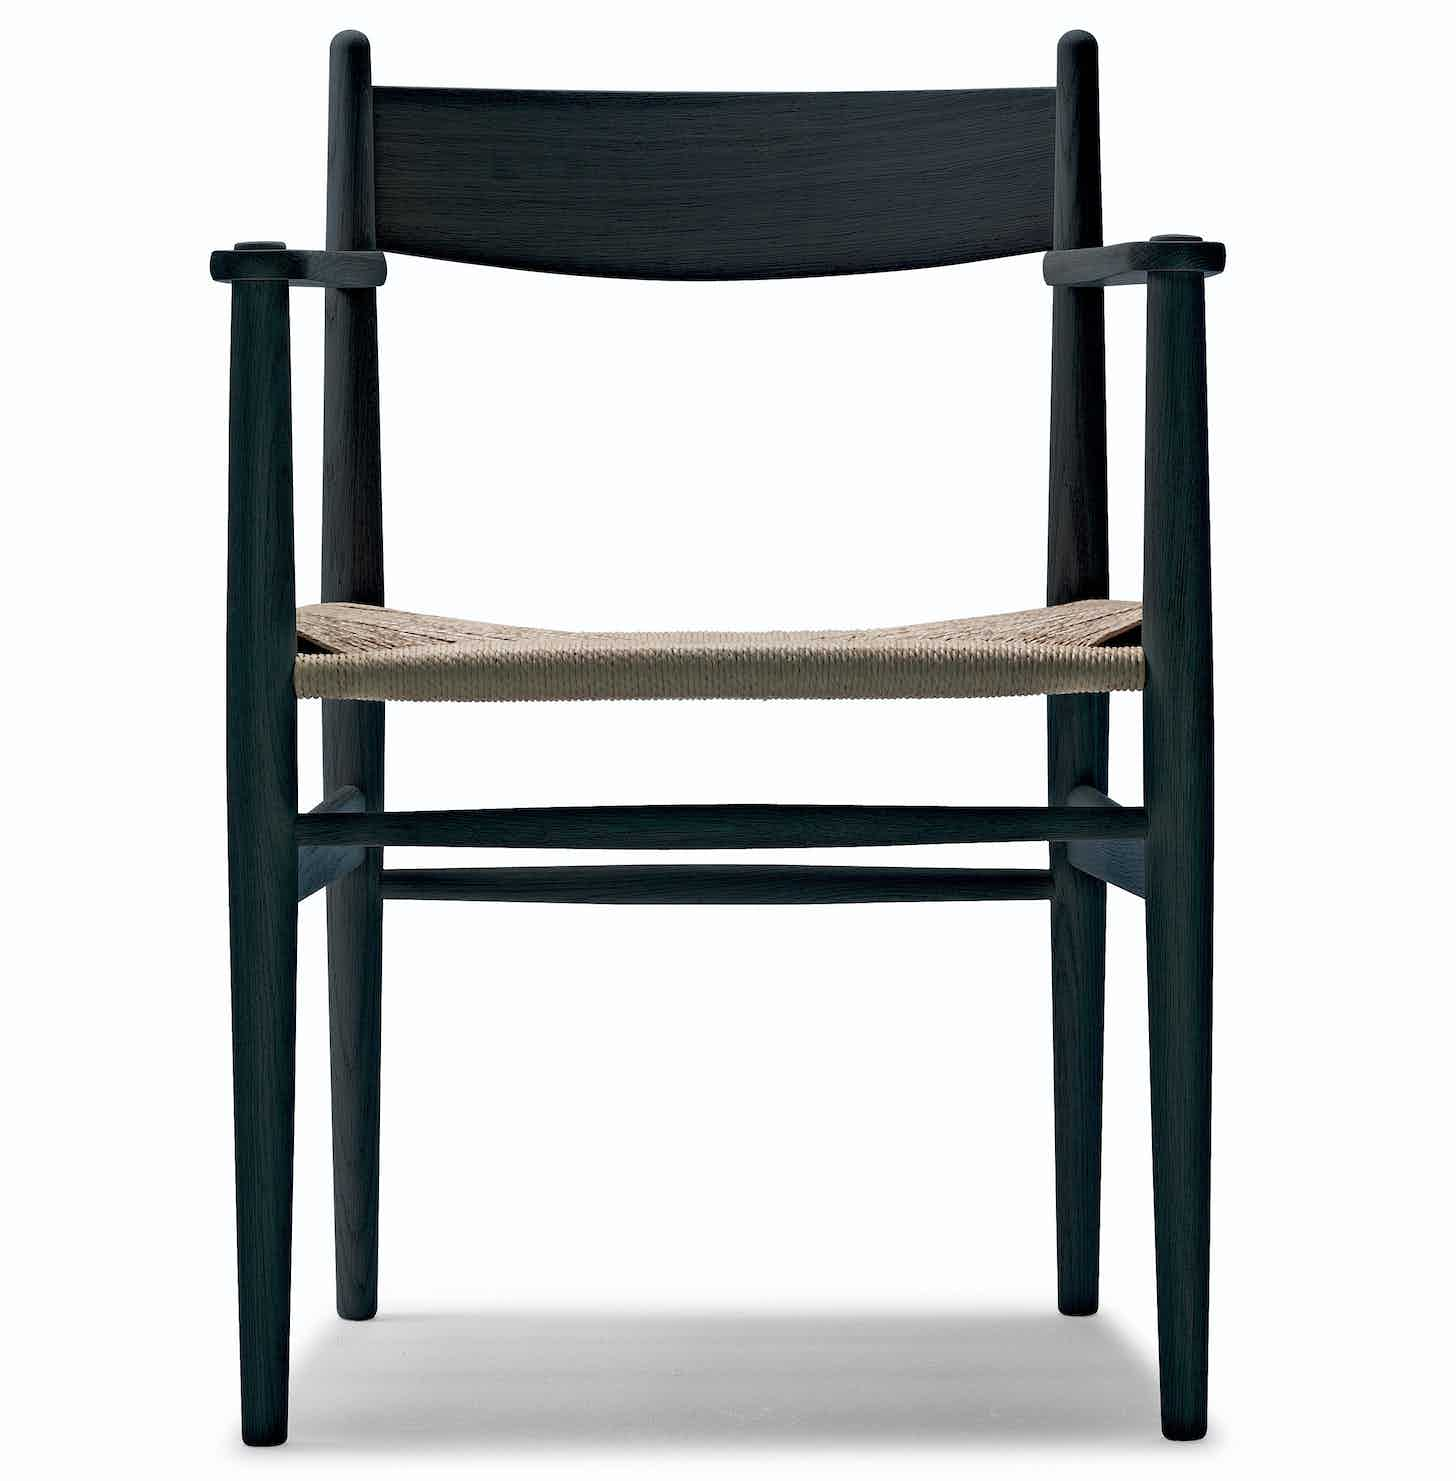 Carl-hansen-son-front-black-ch37-haute-living